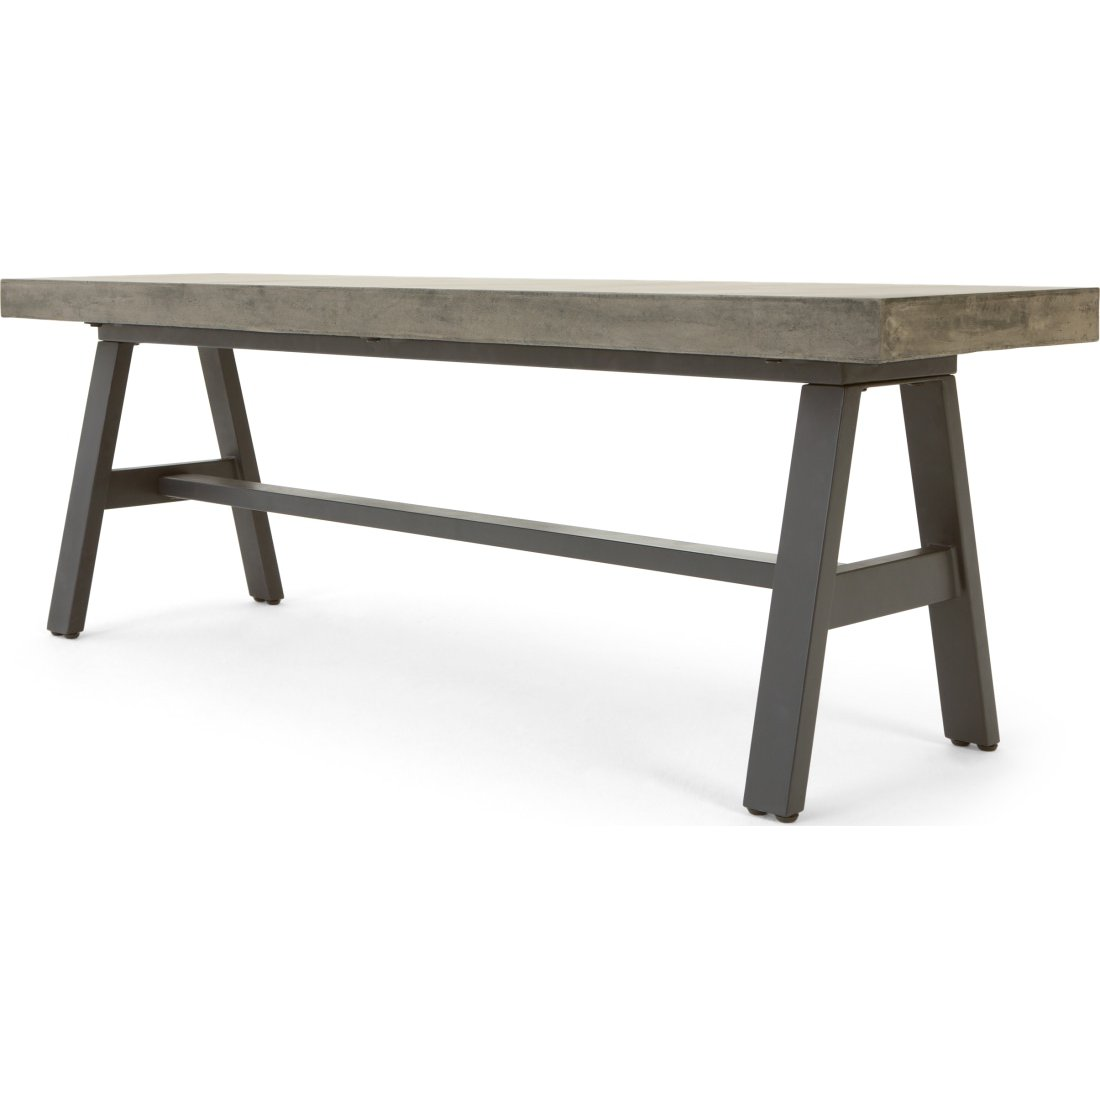 image-Edson Garden Dining Bench, Cement and Metal